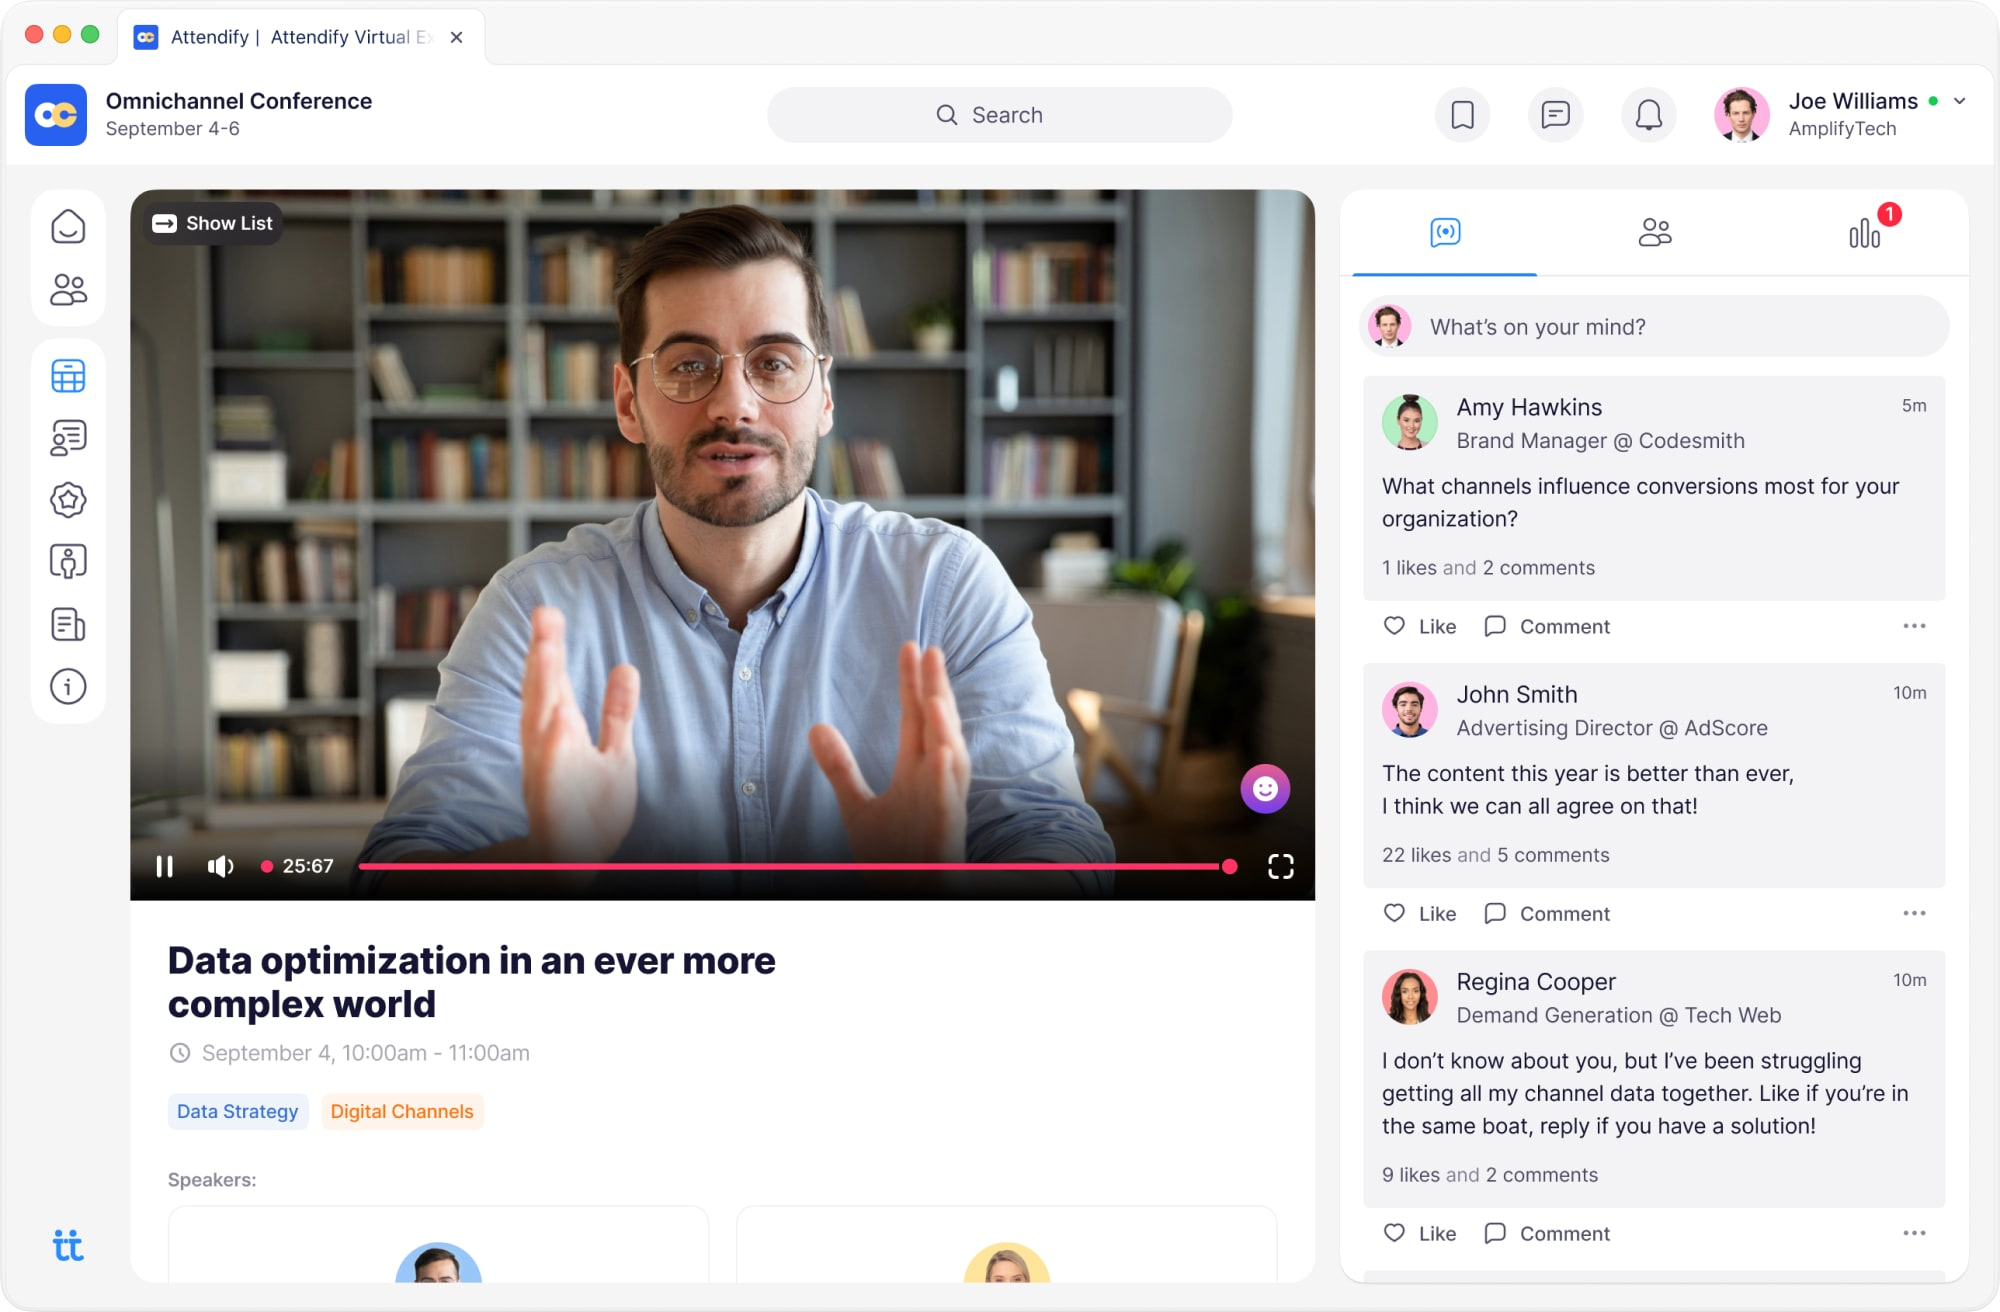 With Attendify, drive audience engagement around your live streaming sessions and virtual event content